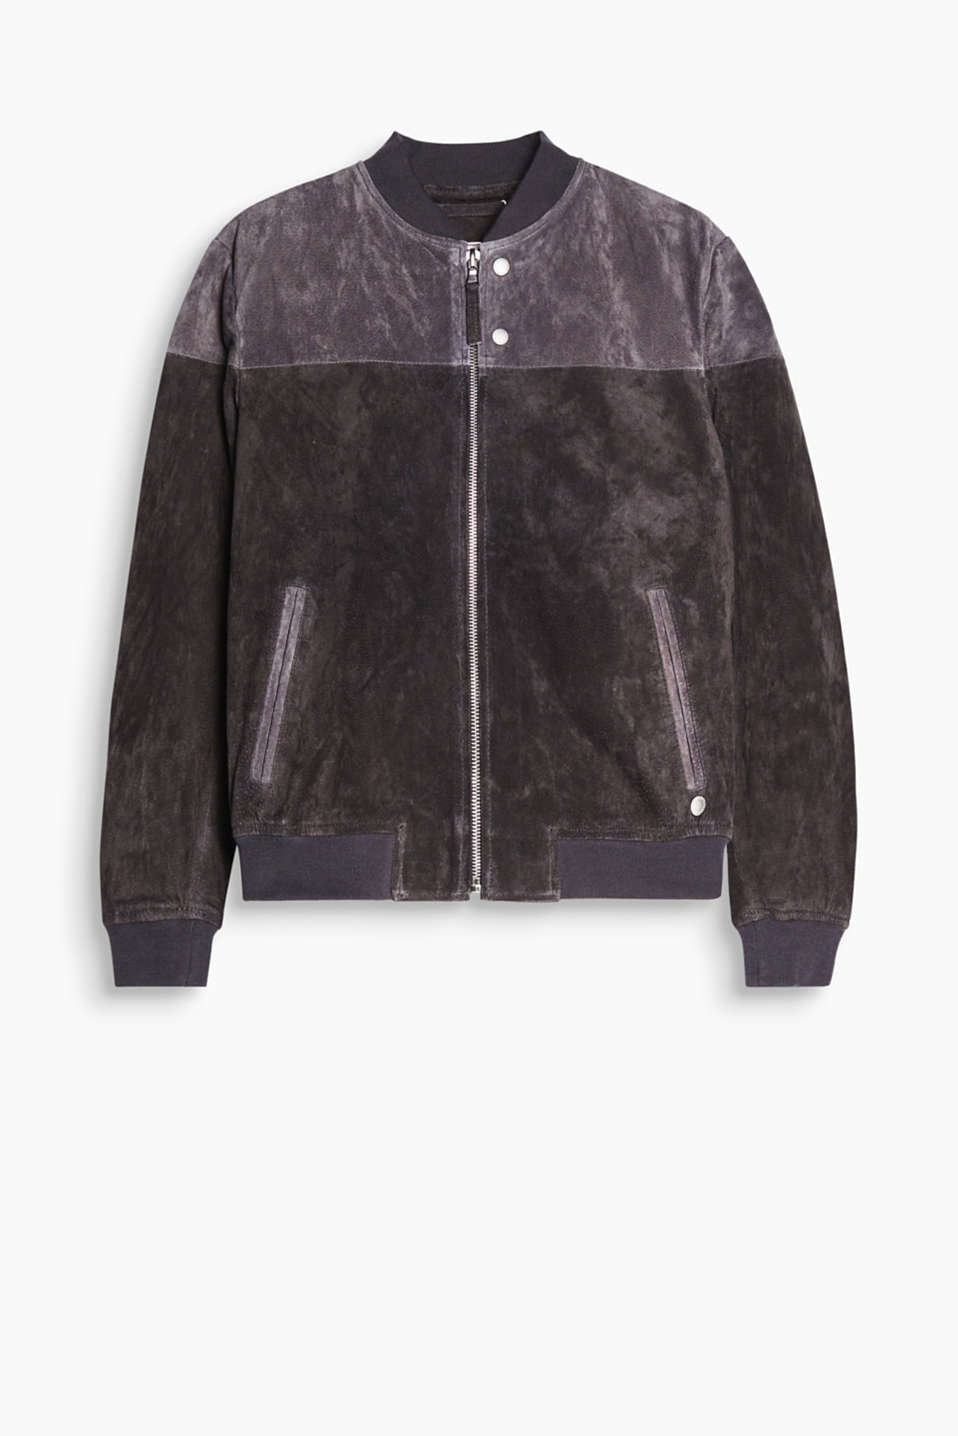 Sporty and sophisticated at the same time! This bomber jacket is distinguished by its premium pigskin leather